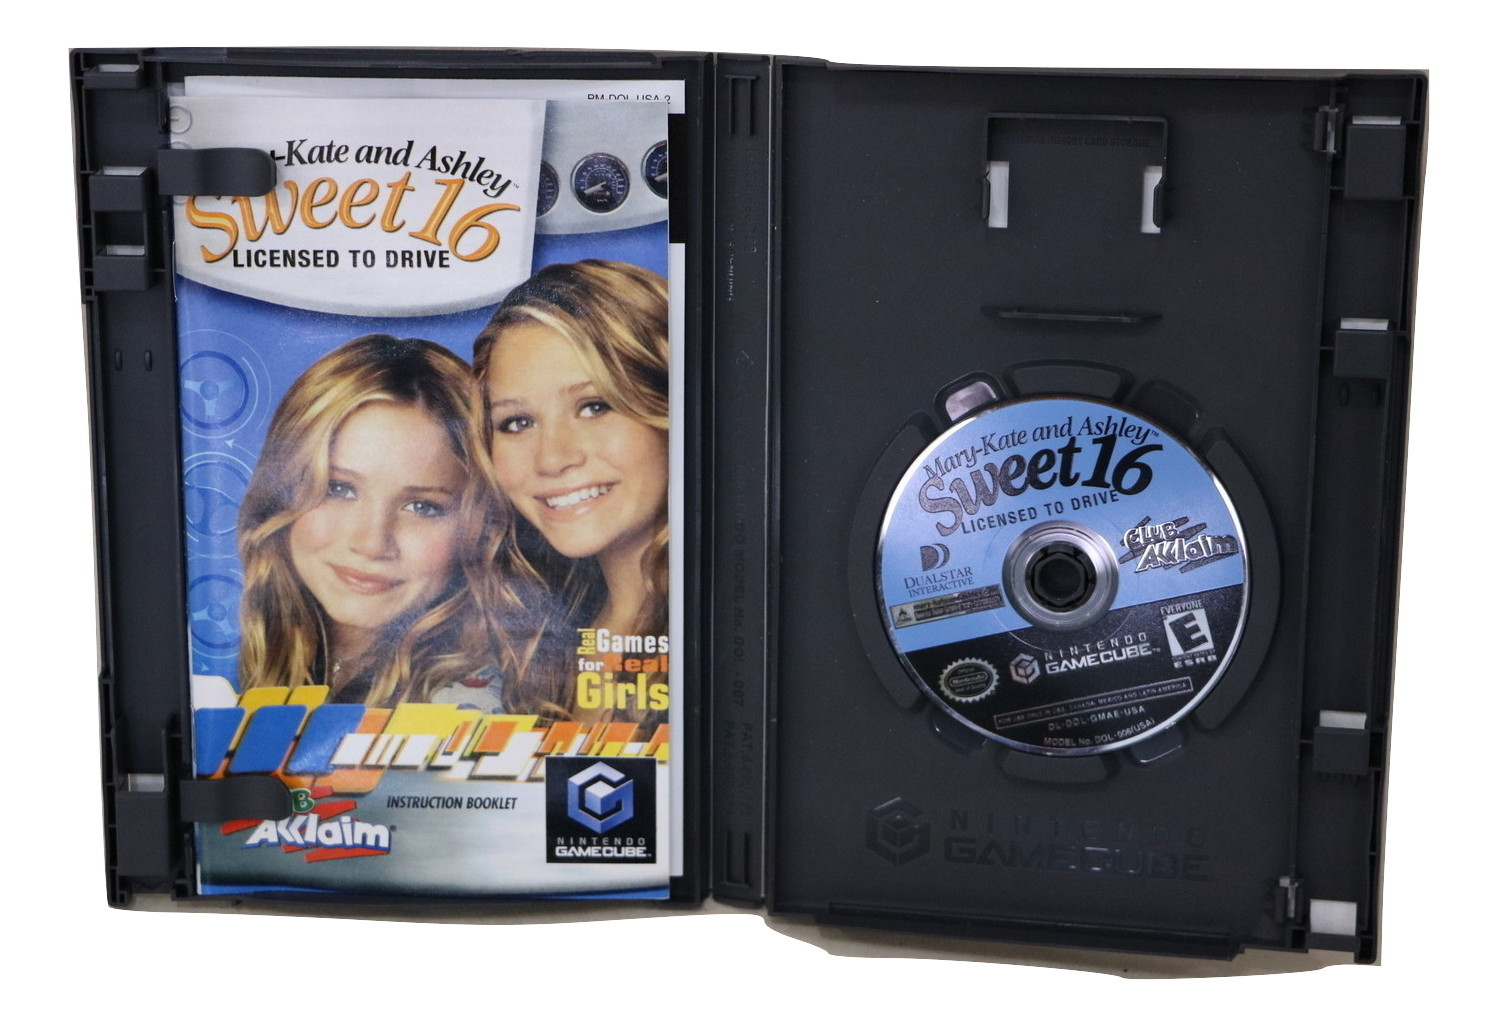 Sweet 16 Mary-Kate and Ashley Nintendo GameCube Video Game - Used